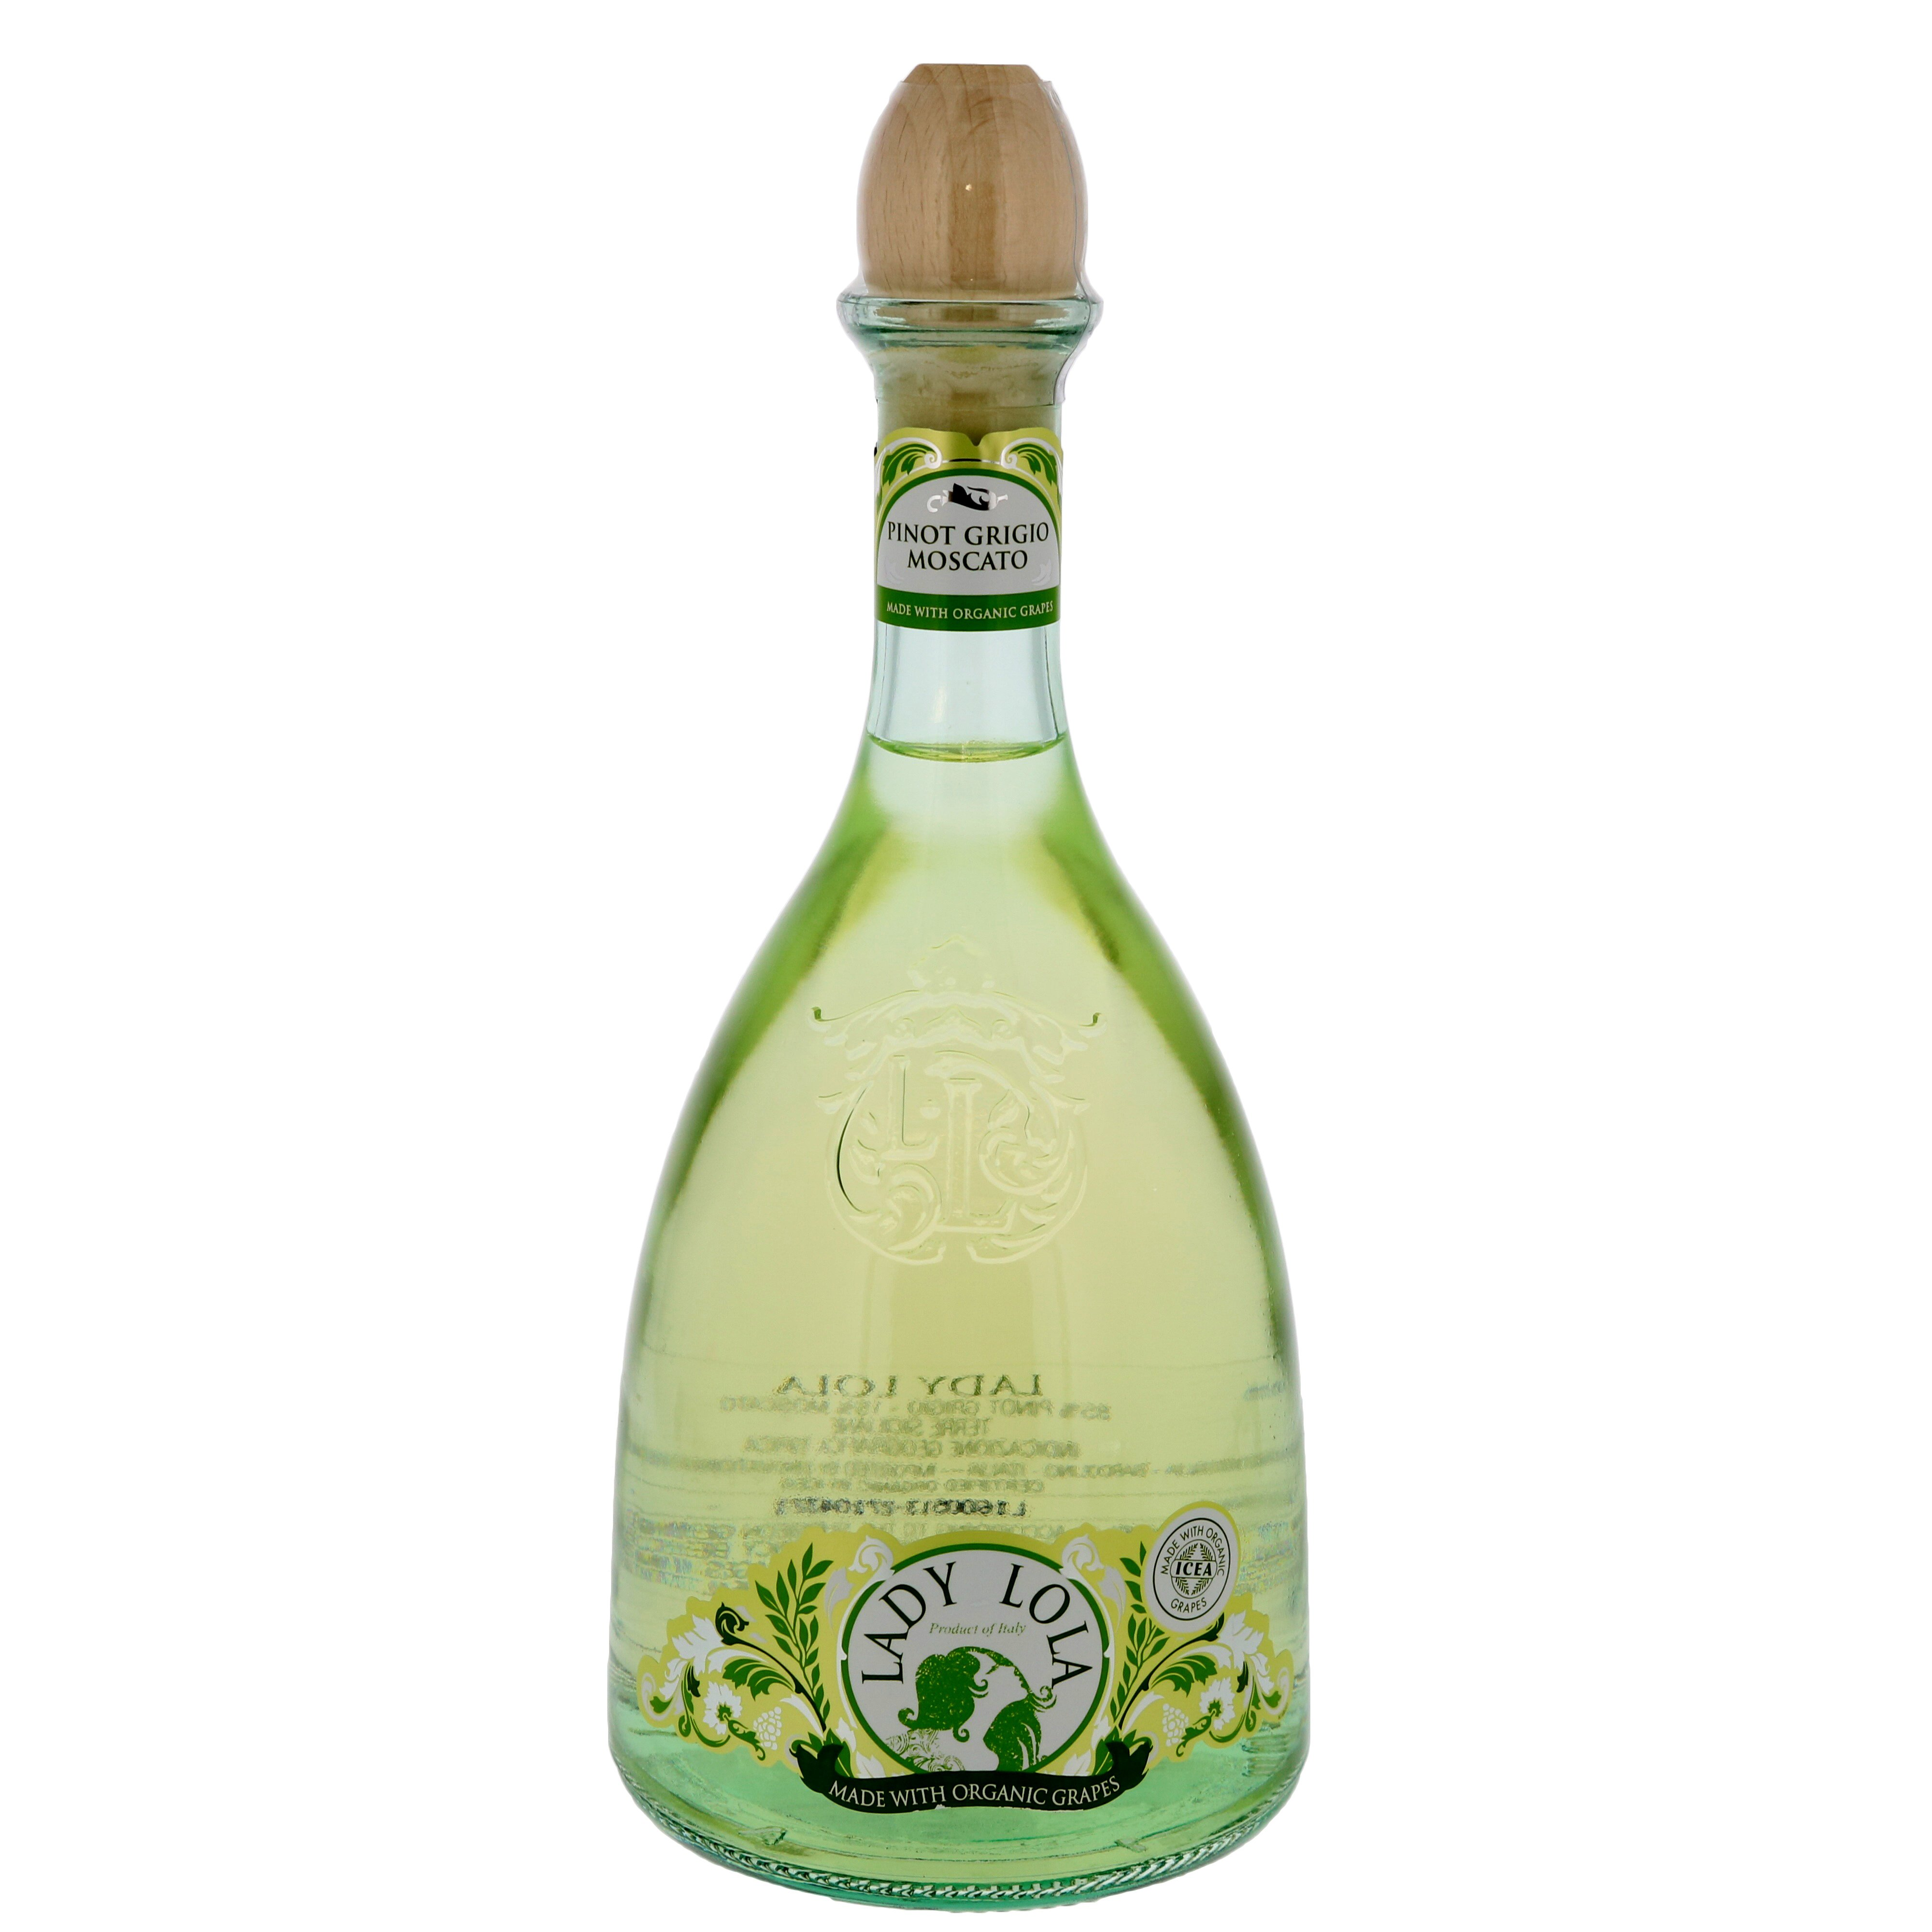 italy shop heb everyday low prices online